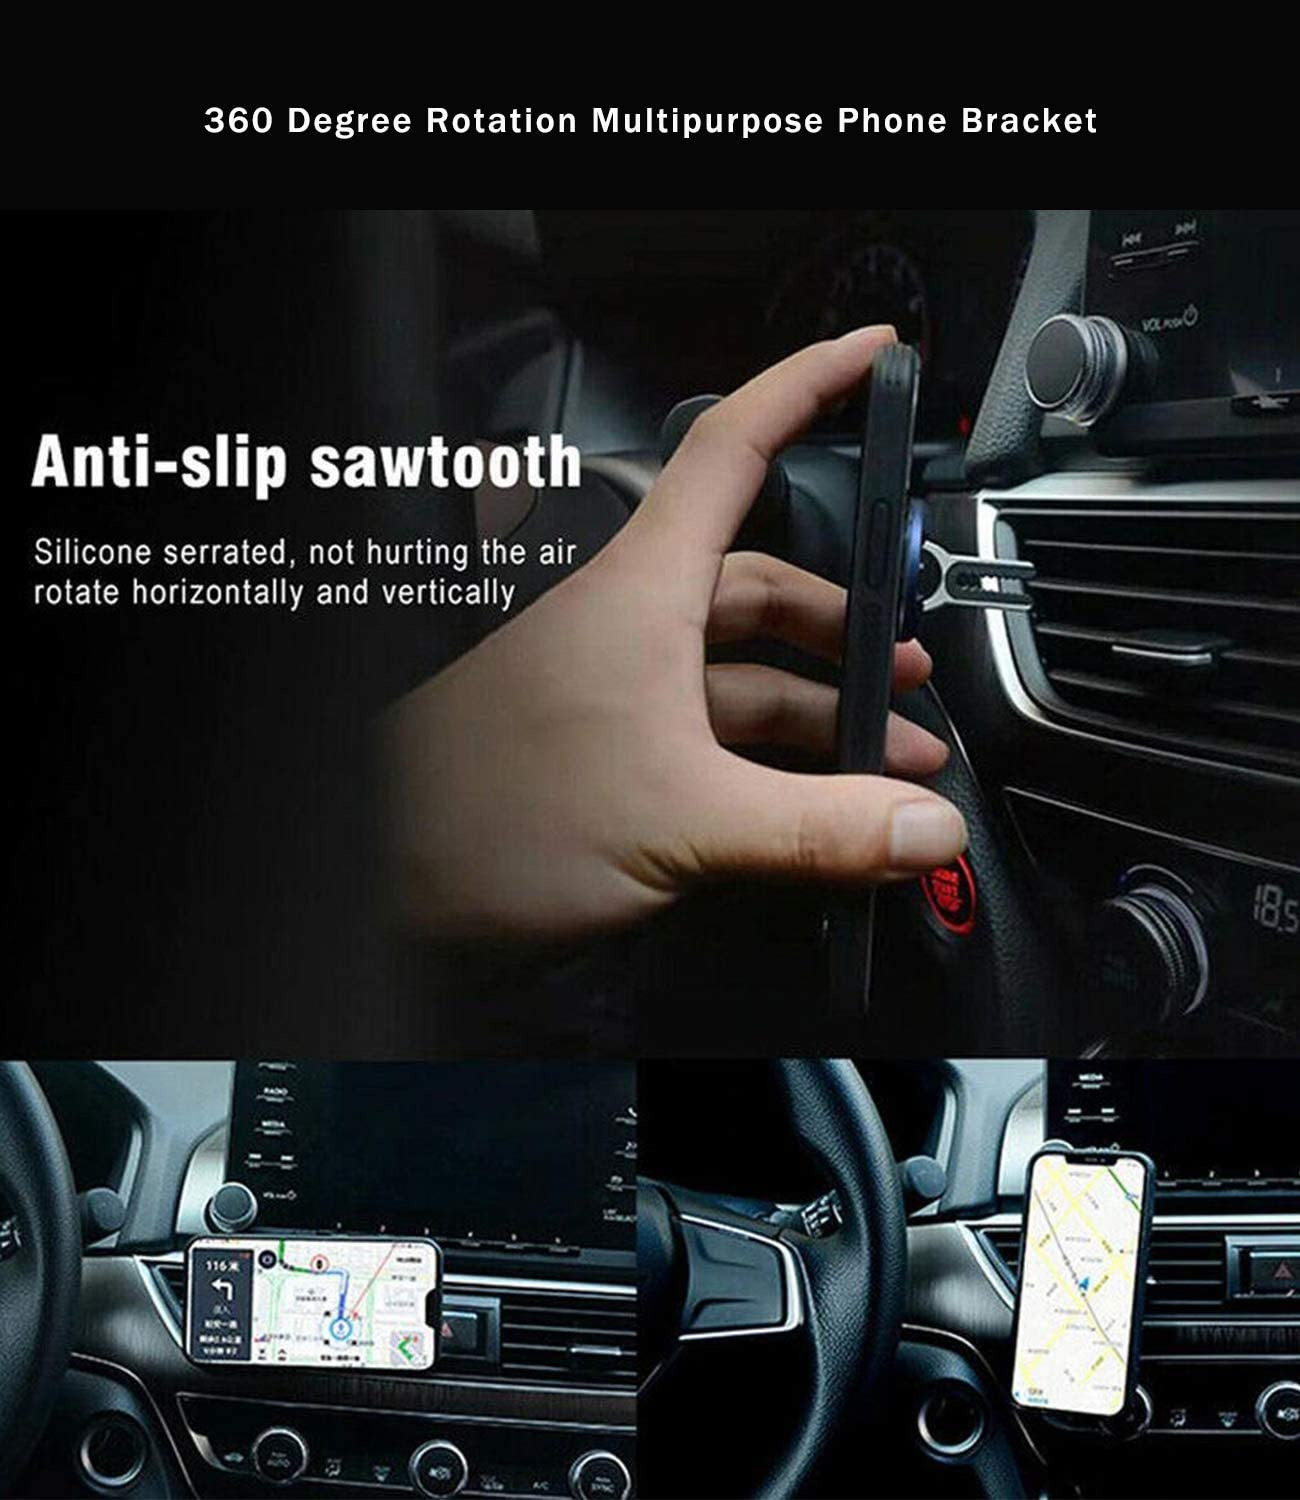 WYMECT Multipurpose Mobile Phone Bracket Holder Stand 360 Degree Handsfree Rotation Cellphone Mount for Car Home 3 Pack